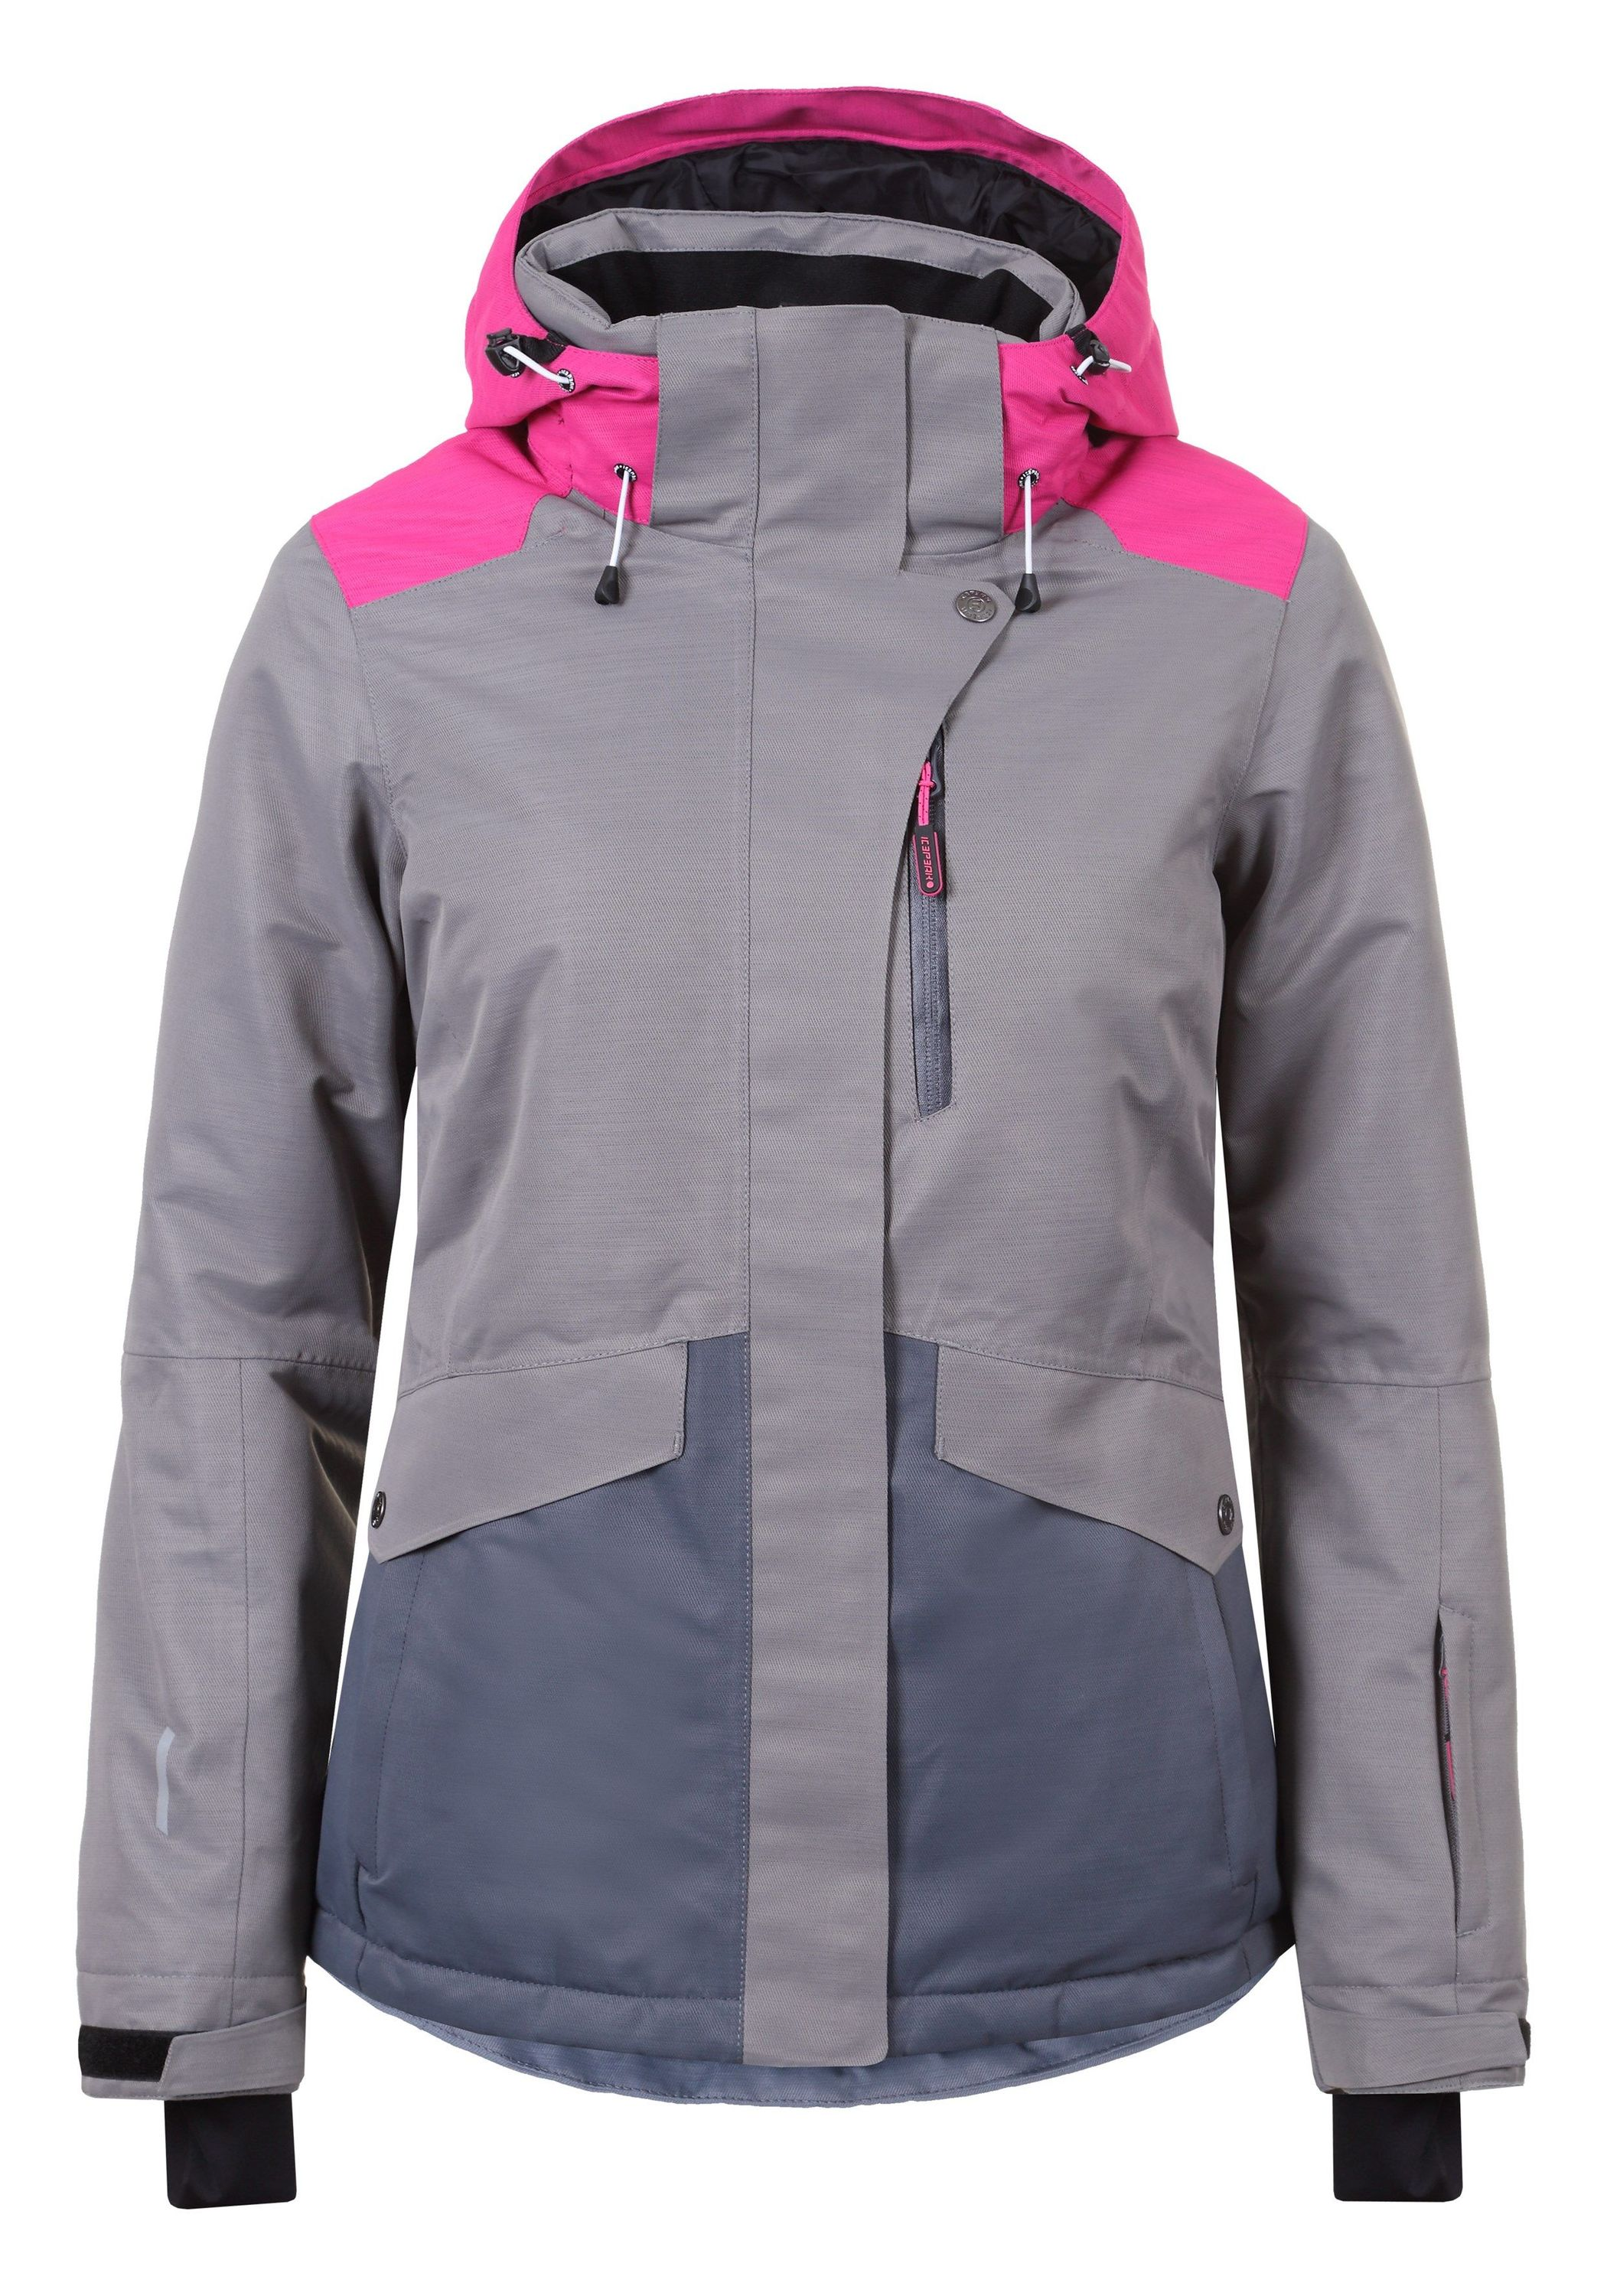 best website b837a 8d9a9 Icepeak Katlyn - Damen Skijacke Outdoorjacke - 253229576-240 grau